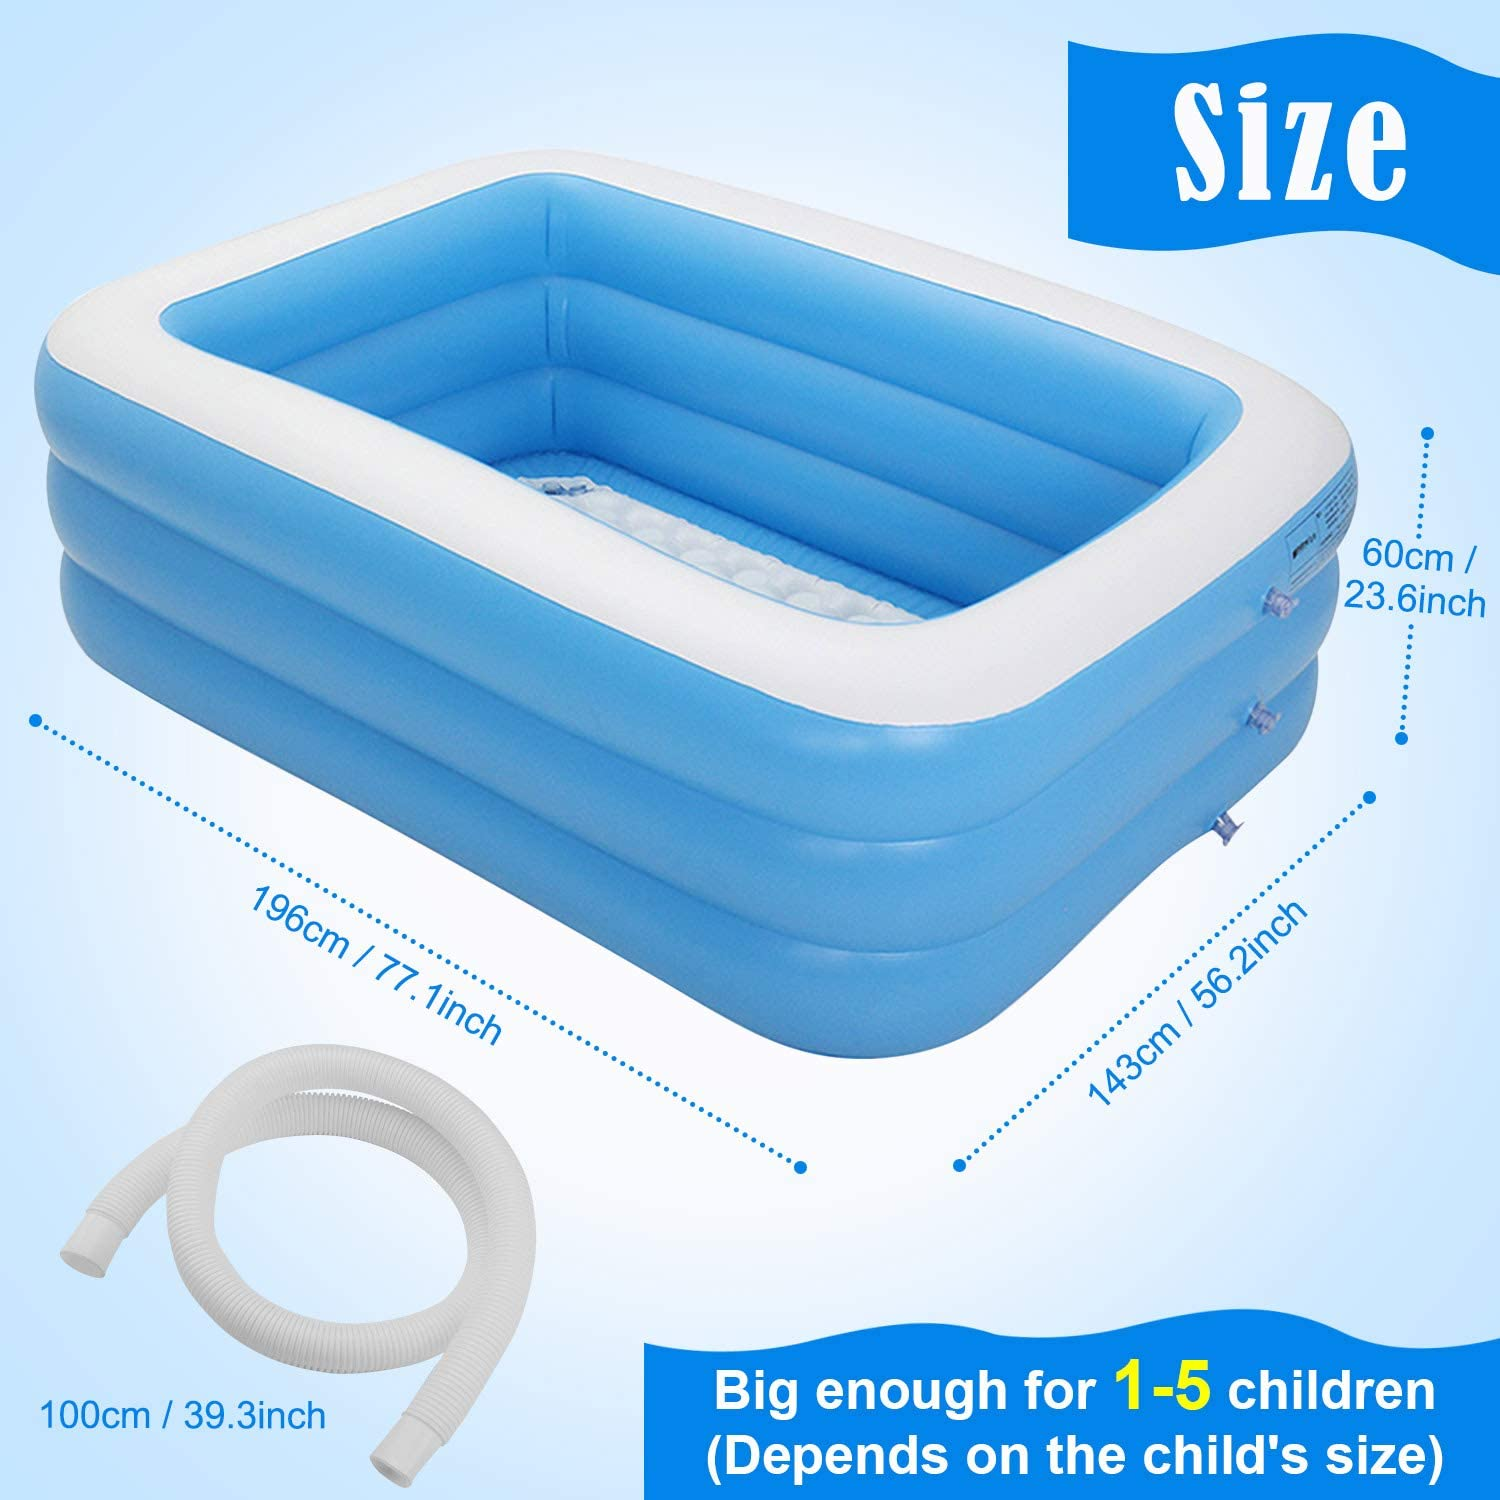 77 x 56inch Inflatable Kiddie Pools Family Outdoor Backyard Summer Water Play Swim Center for 1-4 Adults Kids Children Ages 3+ Minterest Swimming Pool